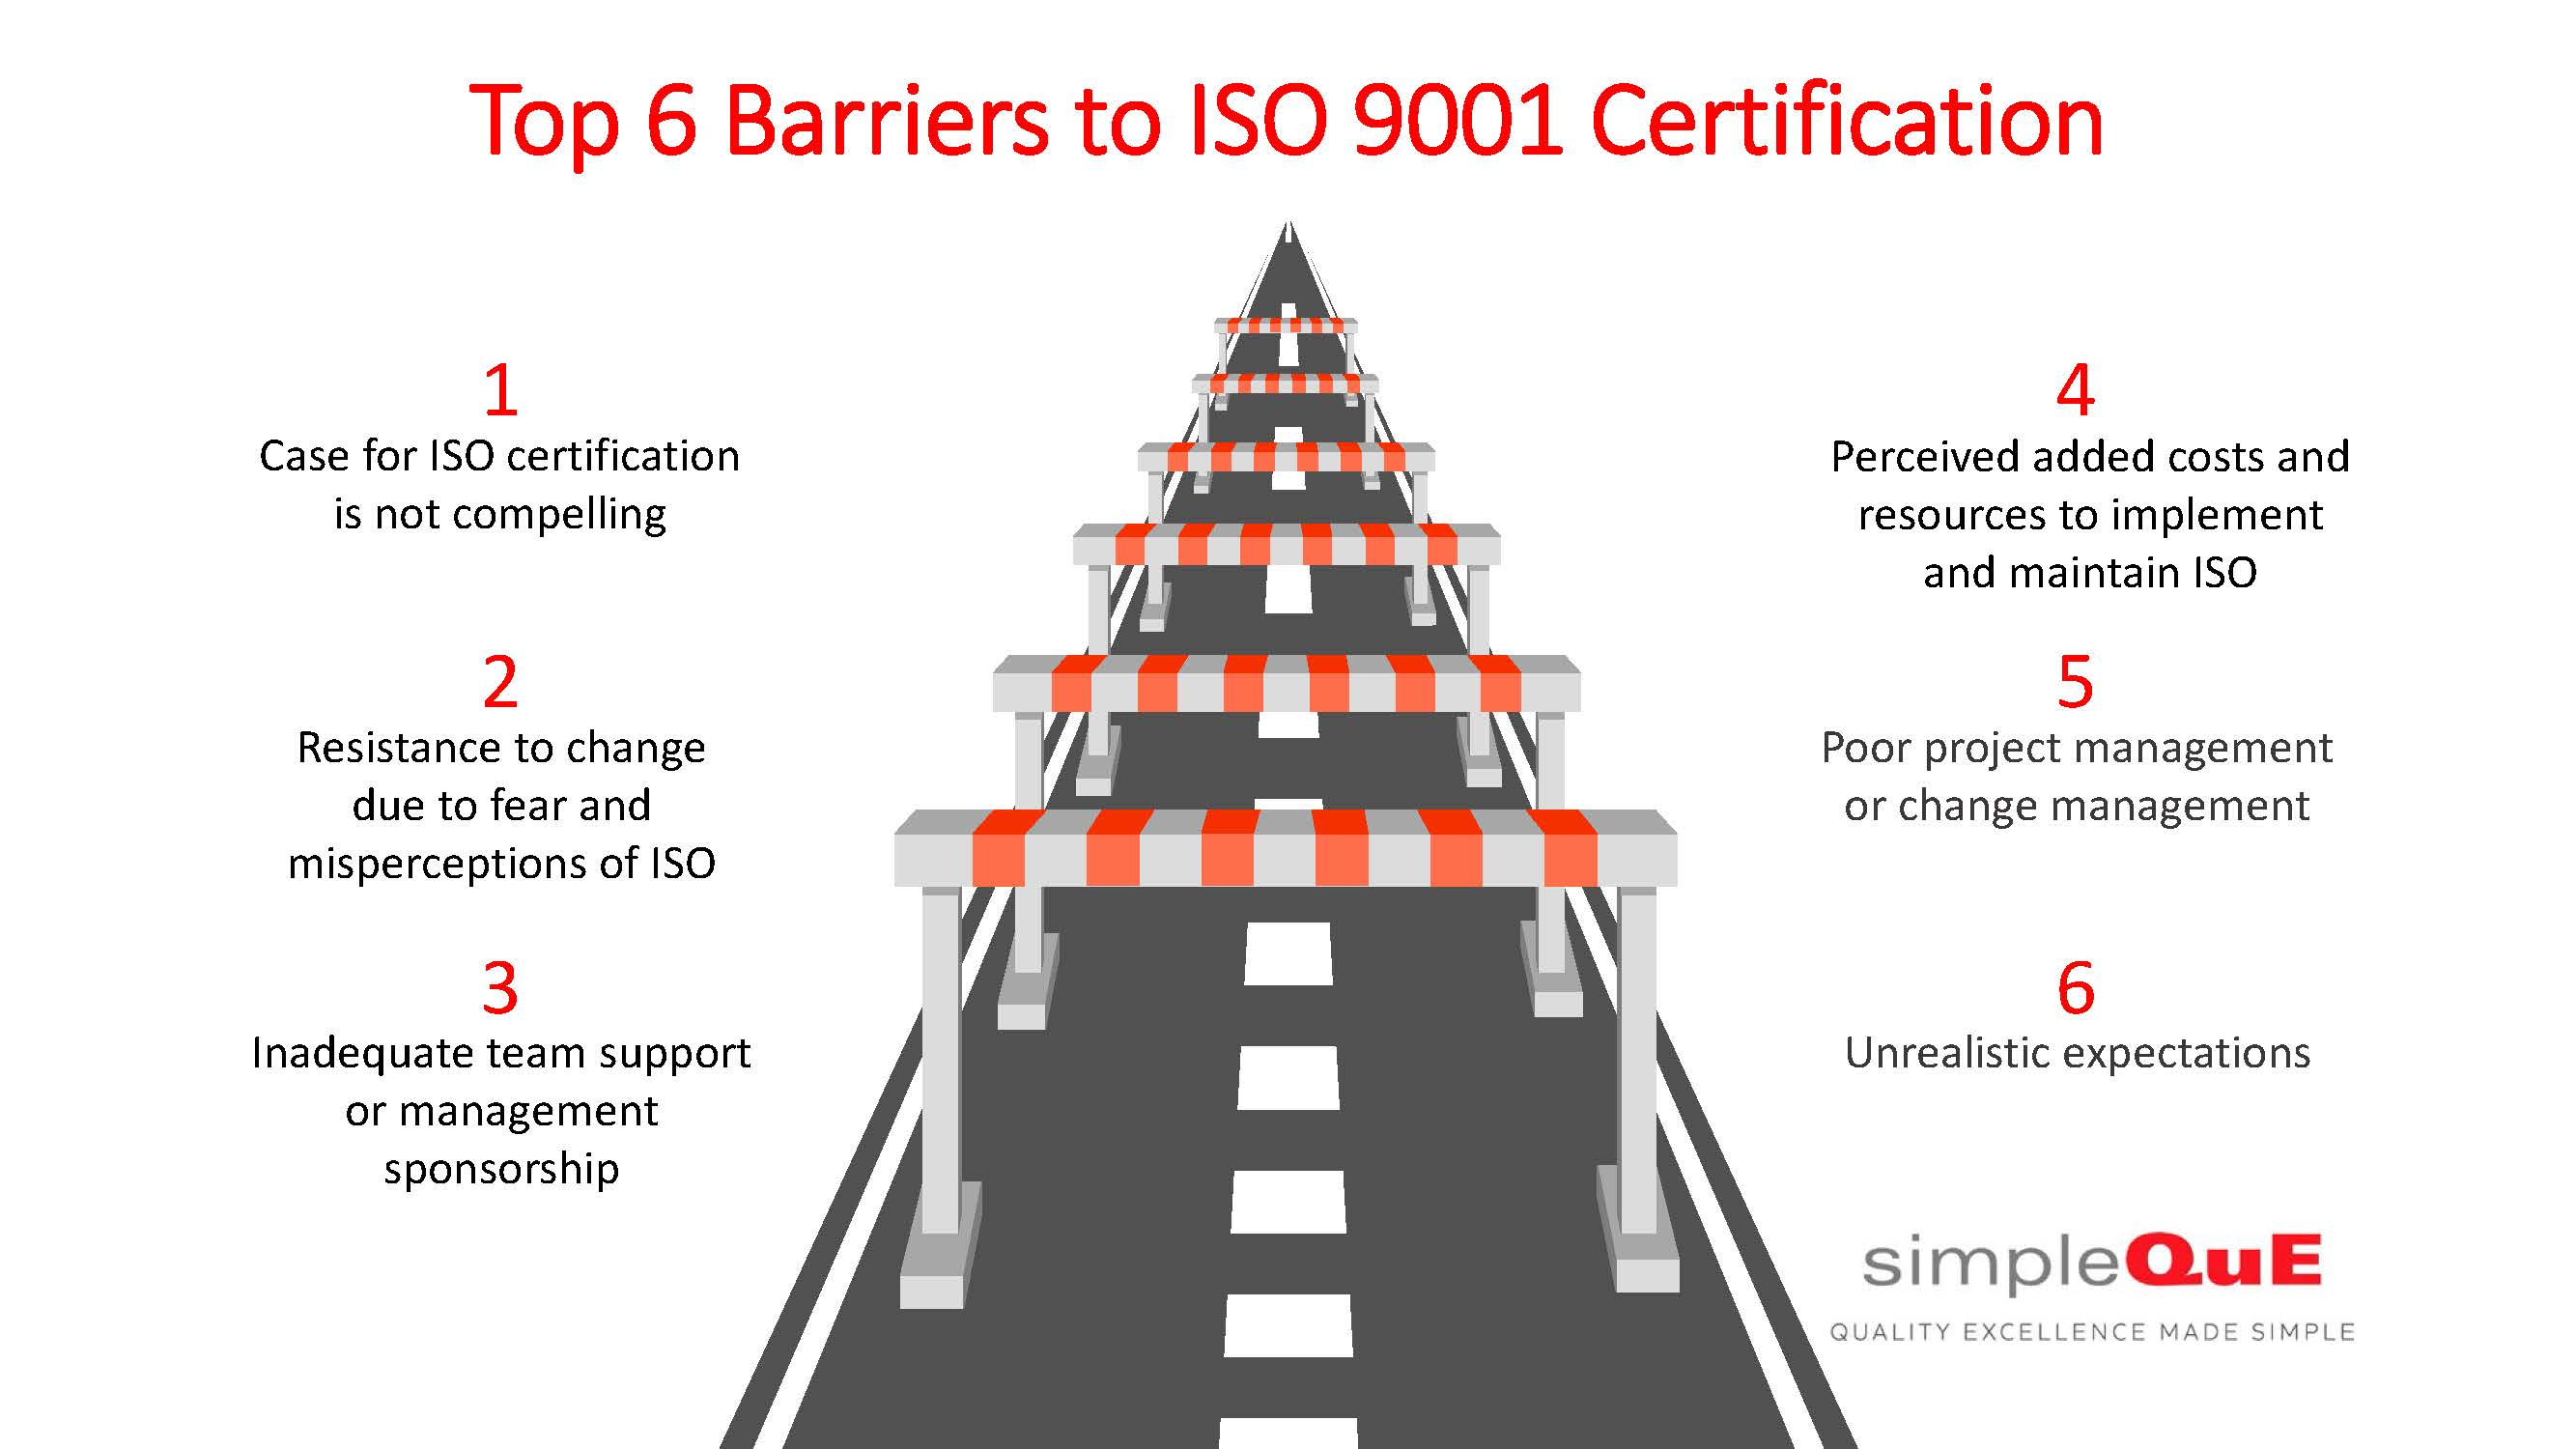 The Top 6 Barriers to ISO 9001 Certification and How to Remove Them